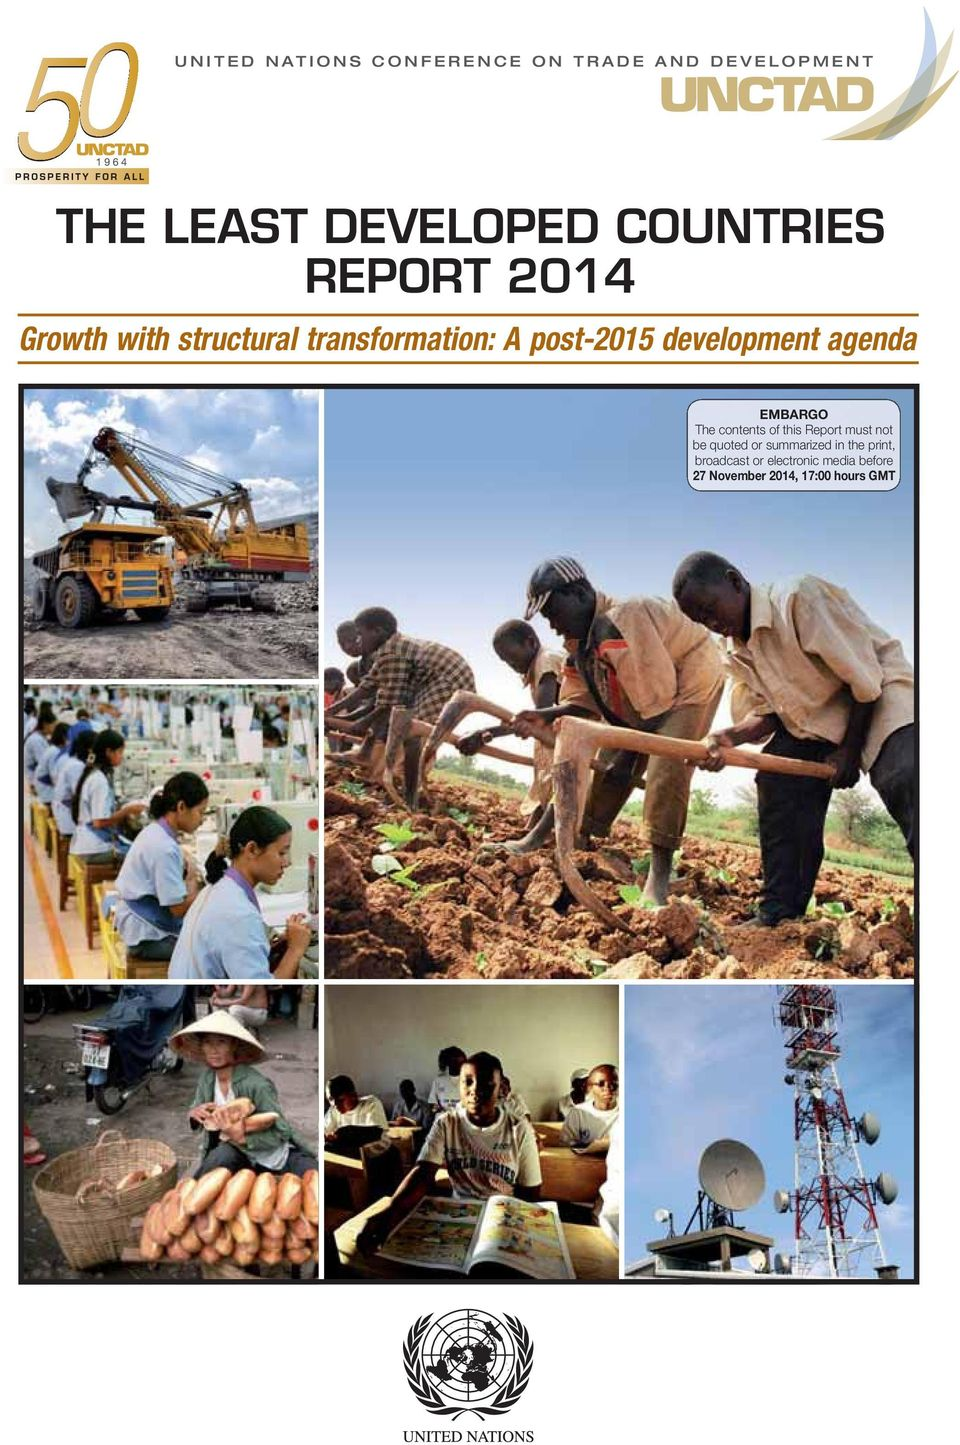 development agenda EMBARGO The contents of this Report must not be quoted or